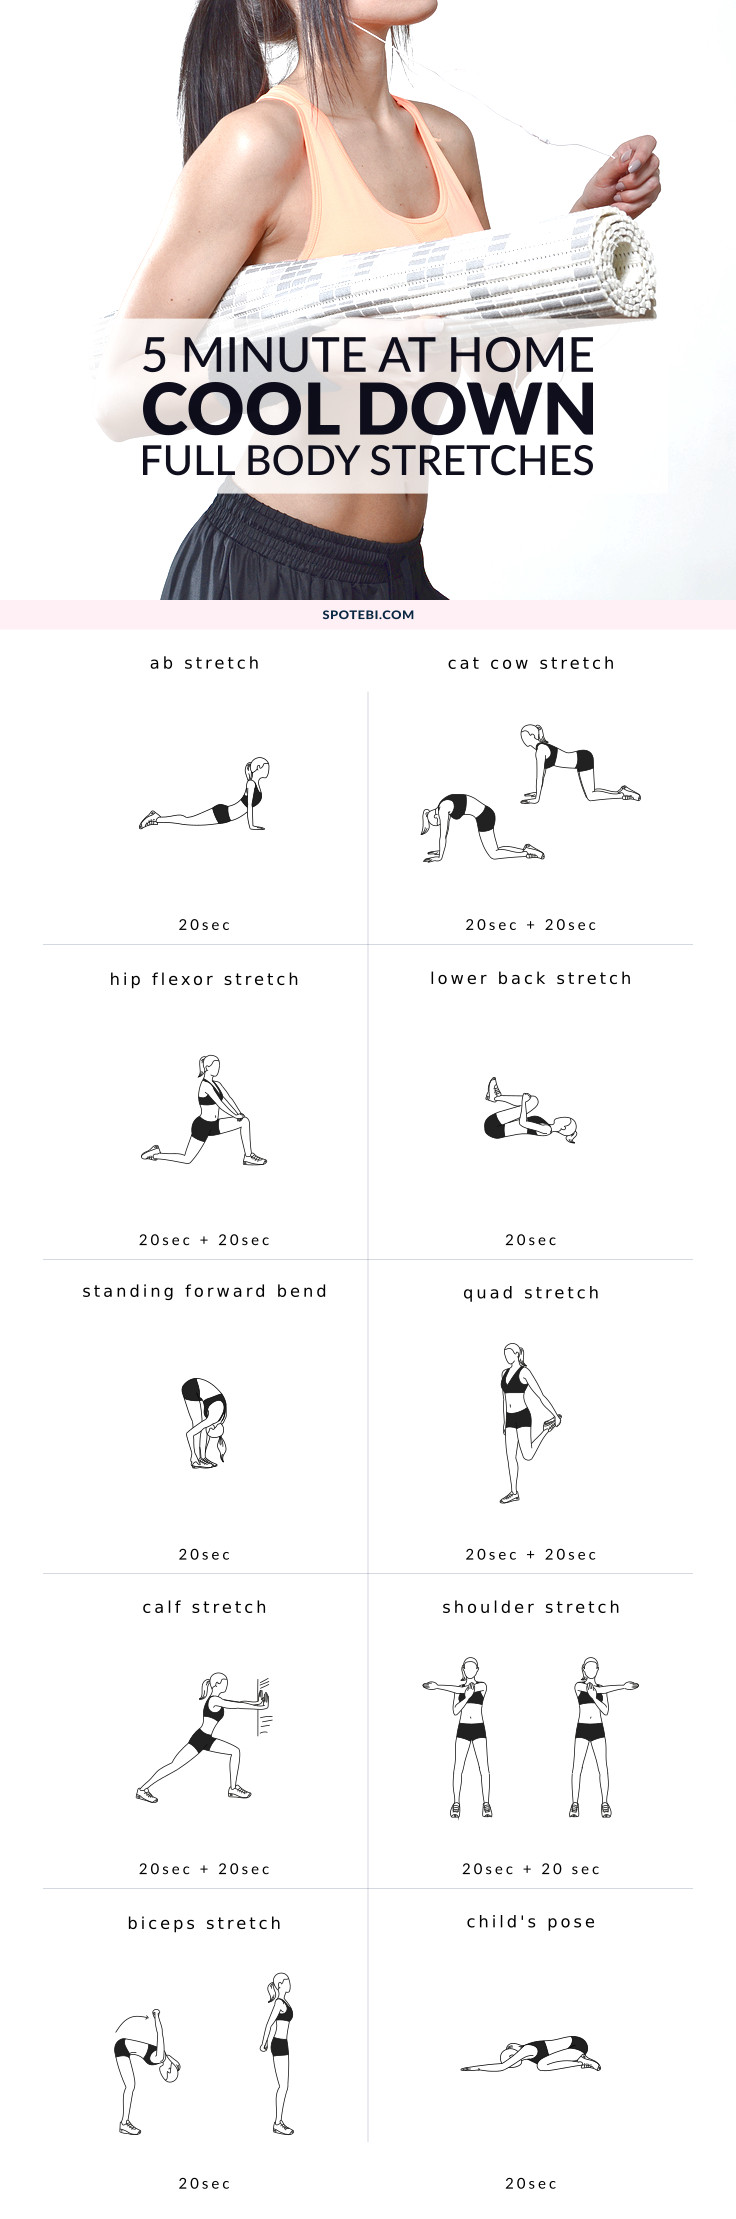 Stretch And Relax Your Entire Body With This 5 Minute Routine Cool Down Exercises To